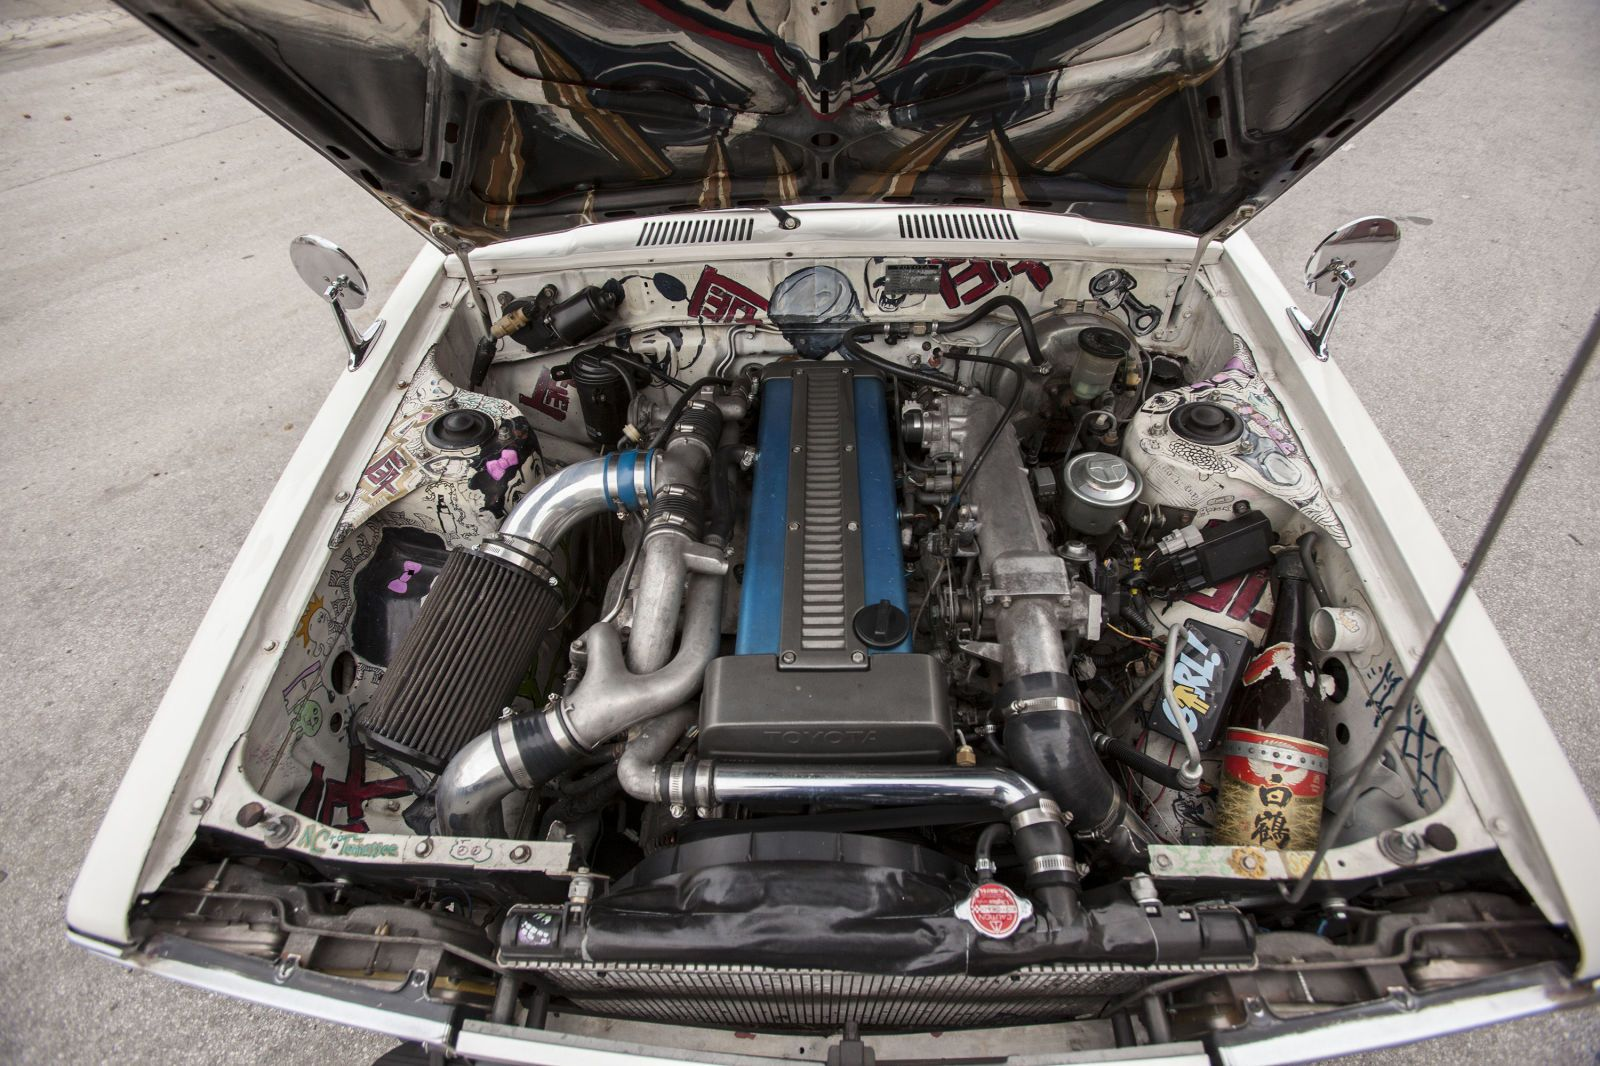 25 Of The Most Interesting Engine Swaps Weve Ever Seen Twin Turbo Mazda Wiring Harness